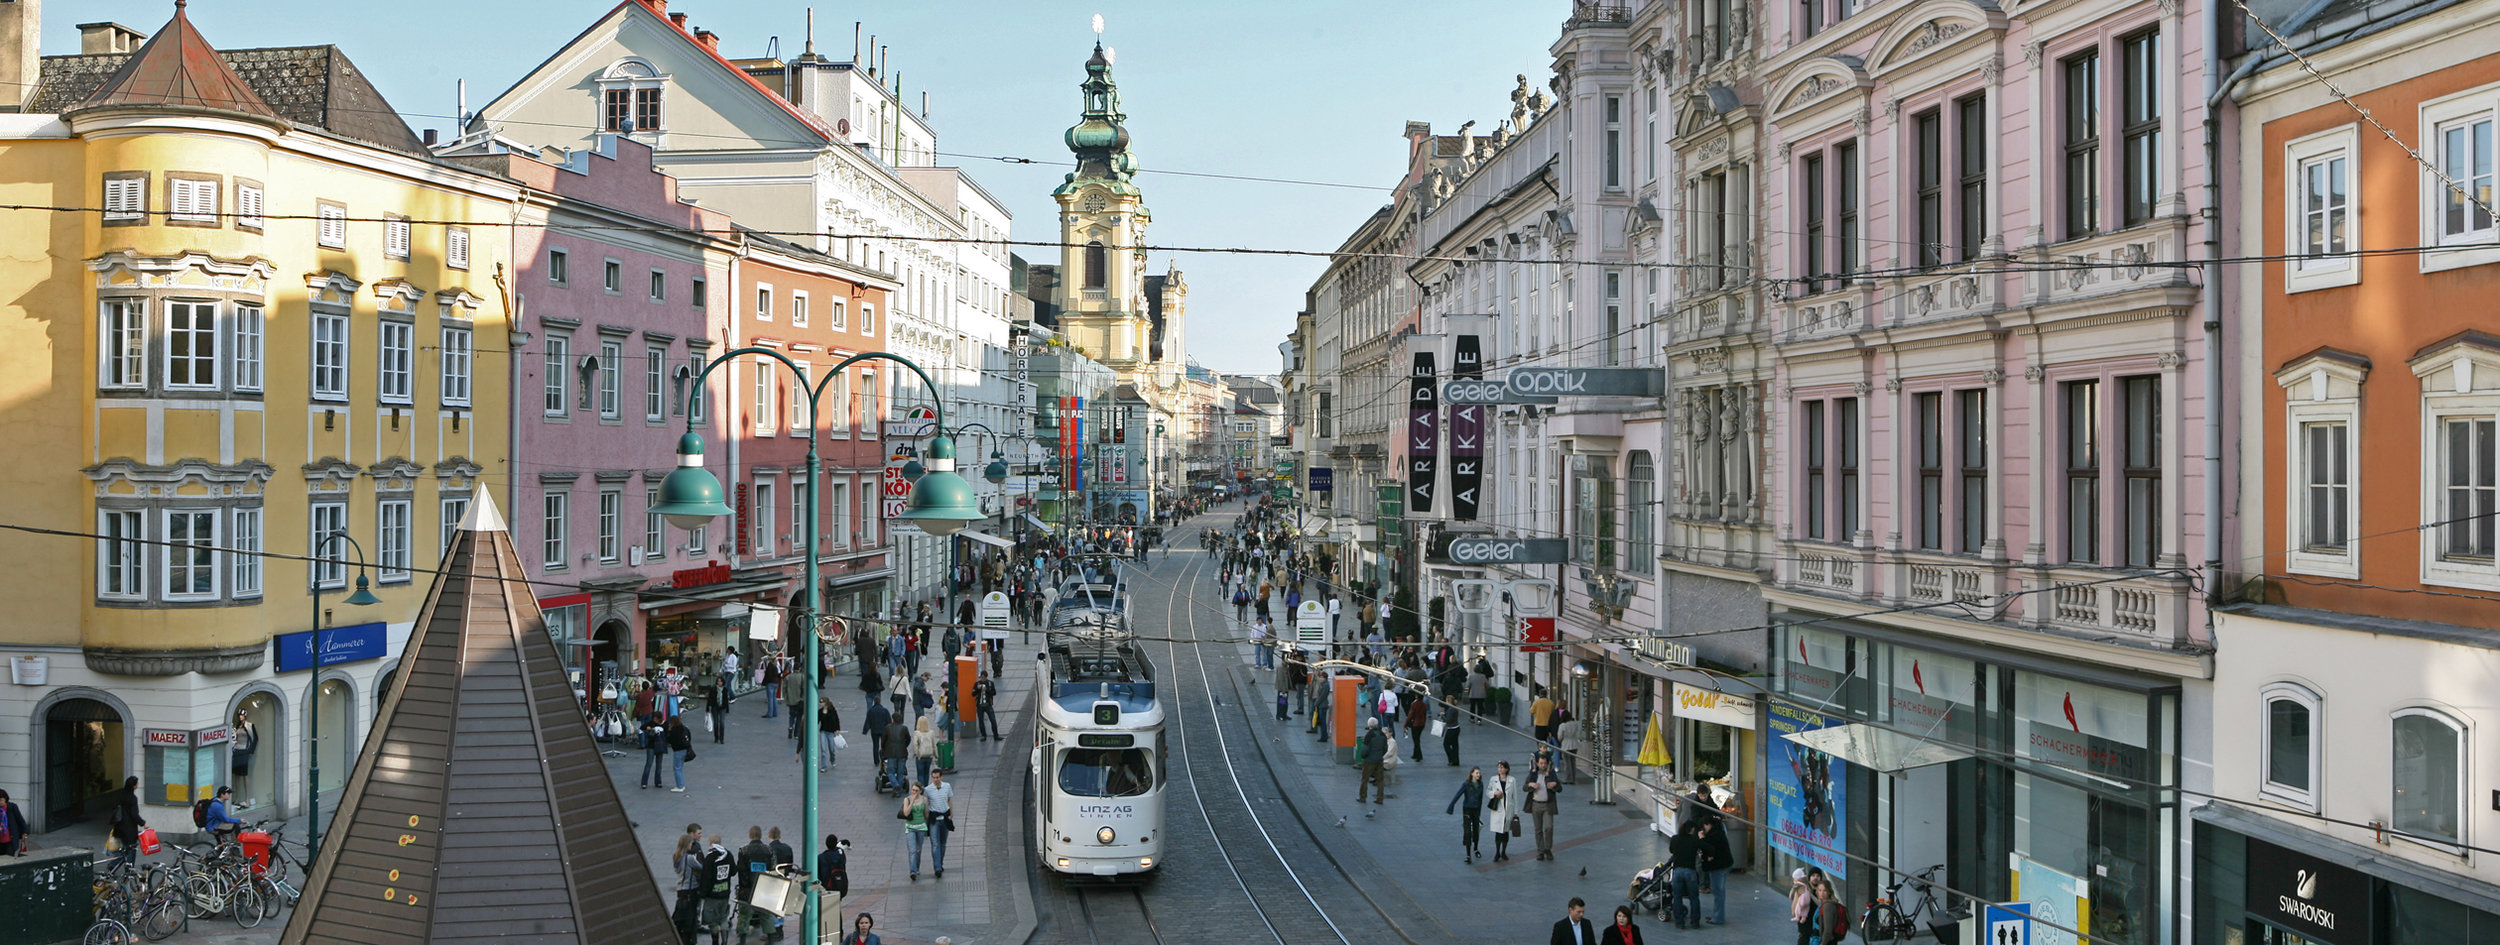 A view of Linz, Austria-- the proposed location of Hitler's cultural capitol